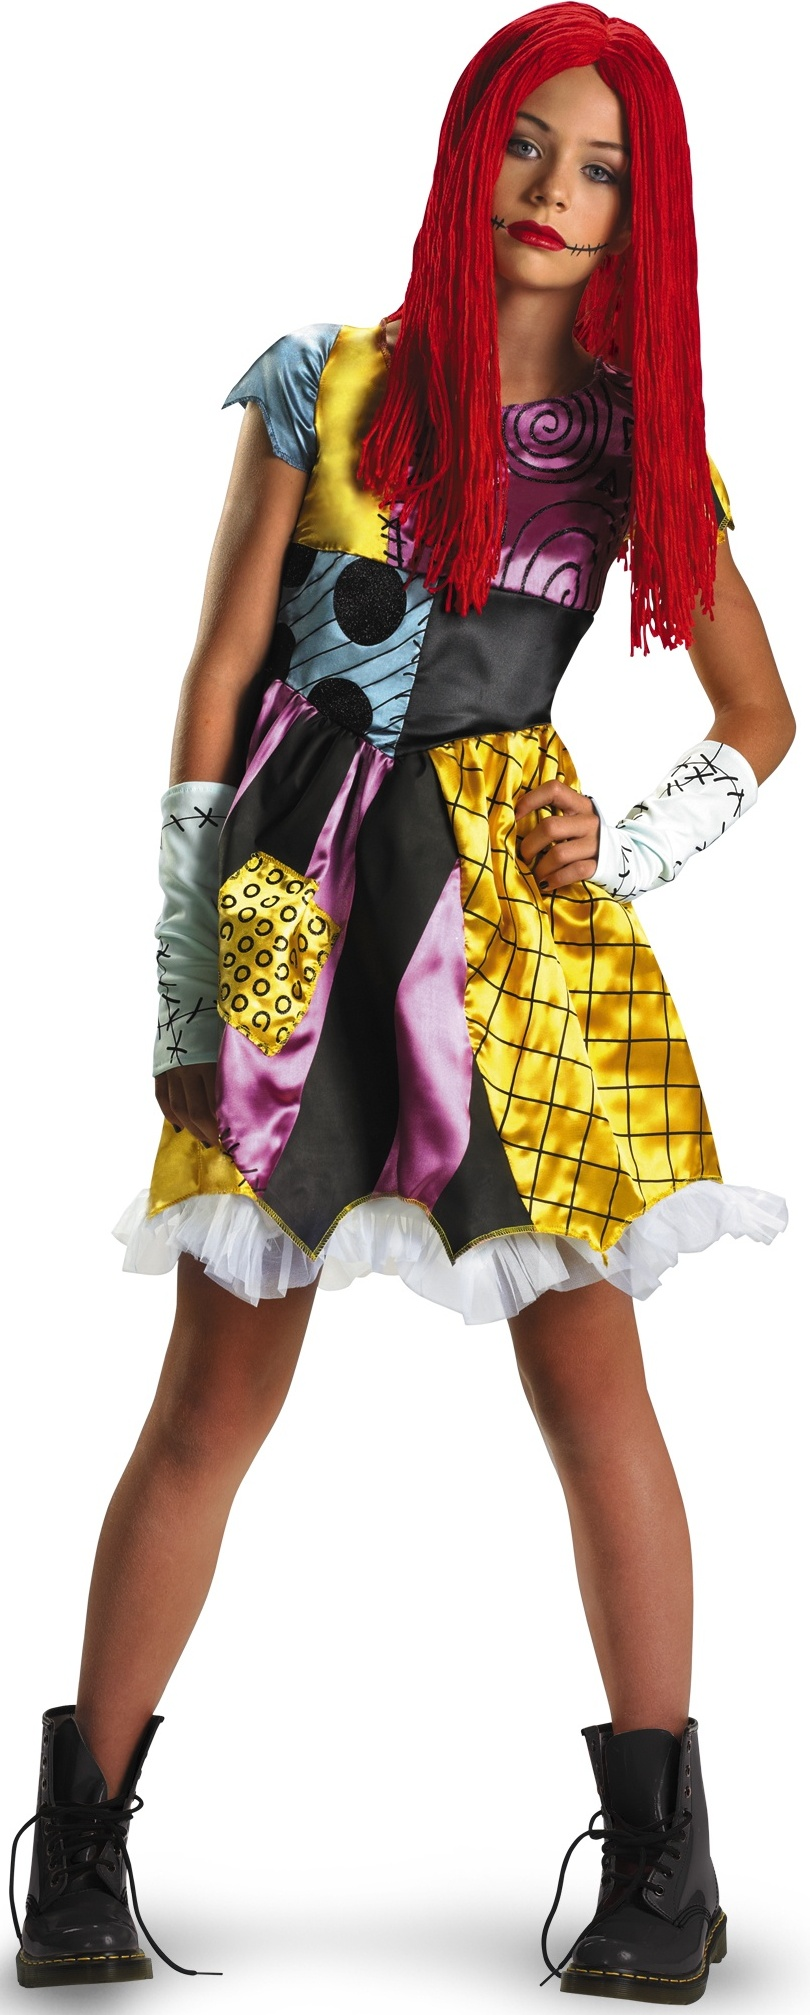 SASSY TEEN SALLY SKELLINGTON  sc 1 st  Crazy For Costumes/La Casa De Los Trucos (305) 858-5029 - Miami ... & Crazy For Costumes/La Casa De Los Trucos (305) 858-5029 - Miami ...